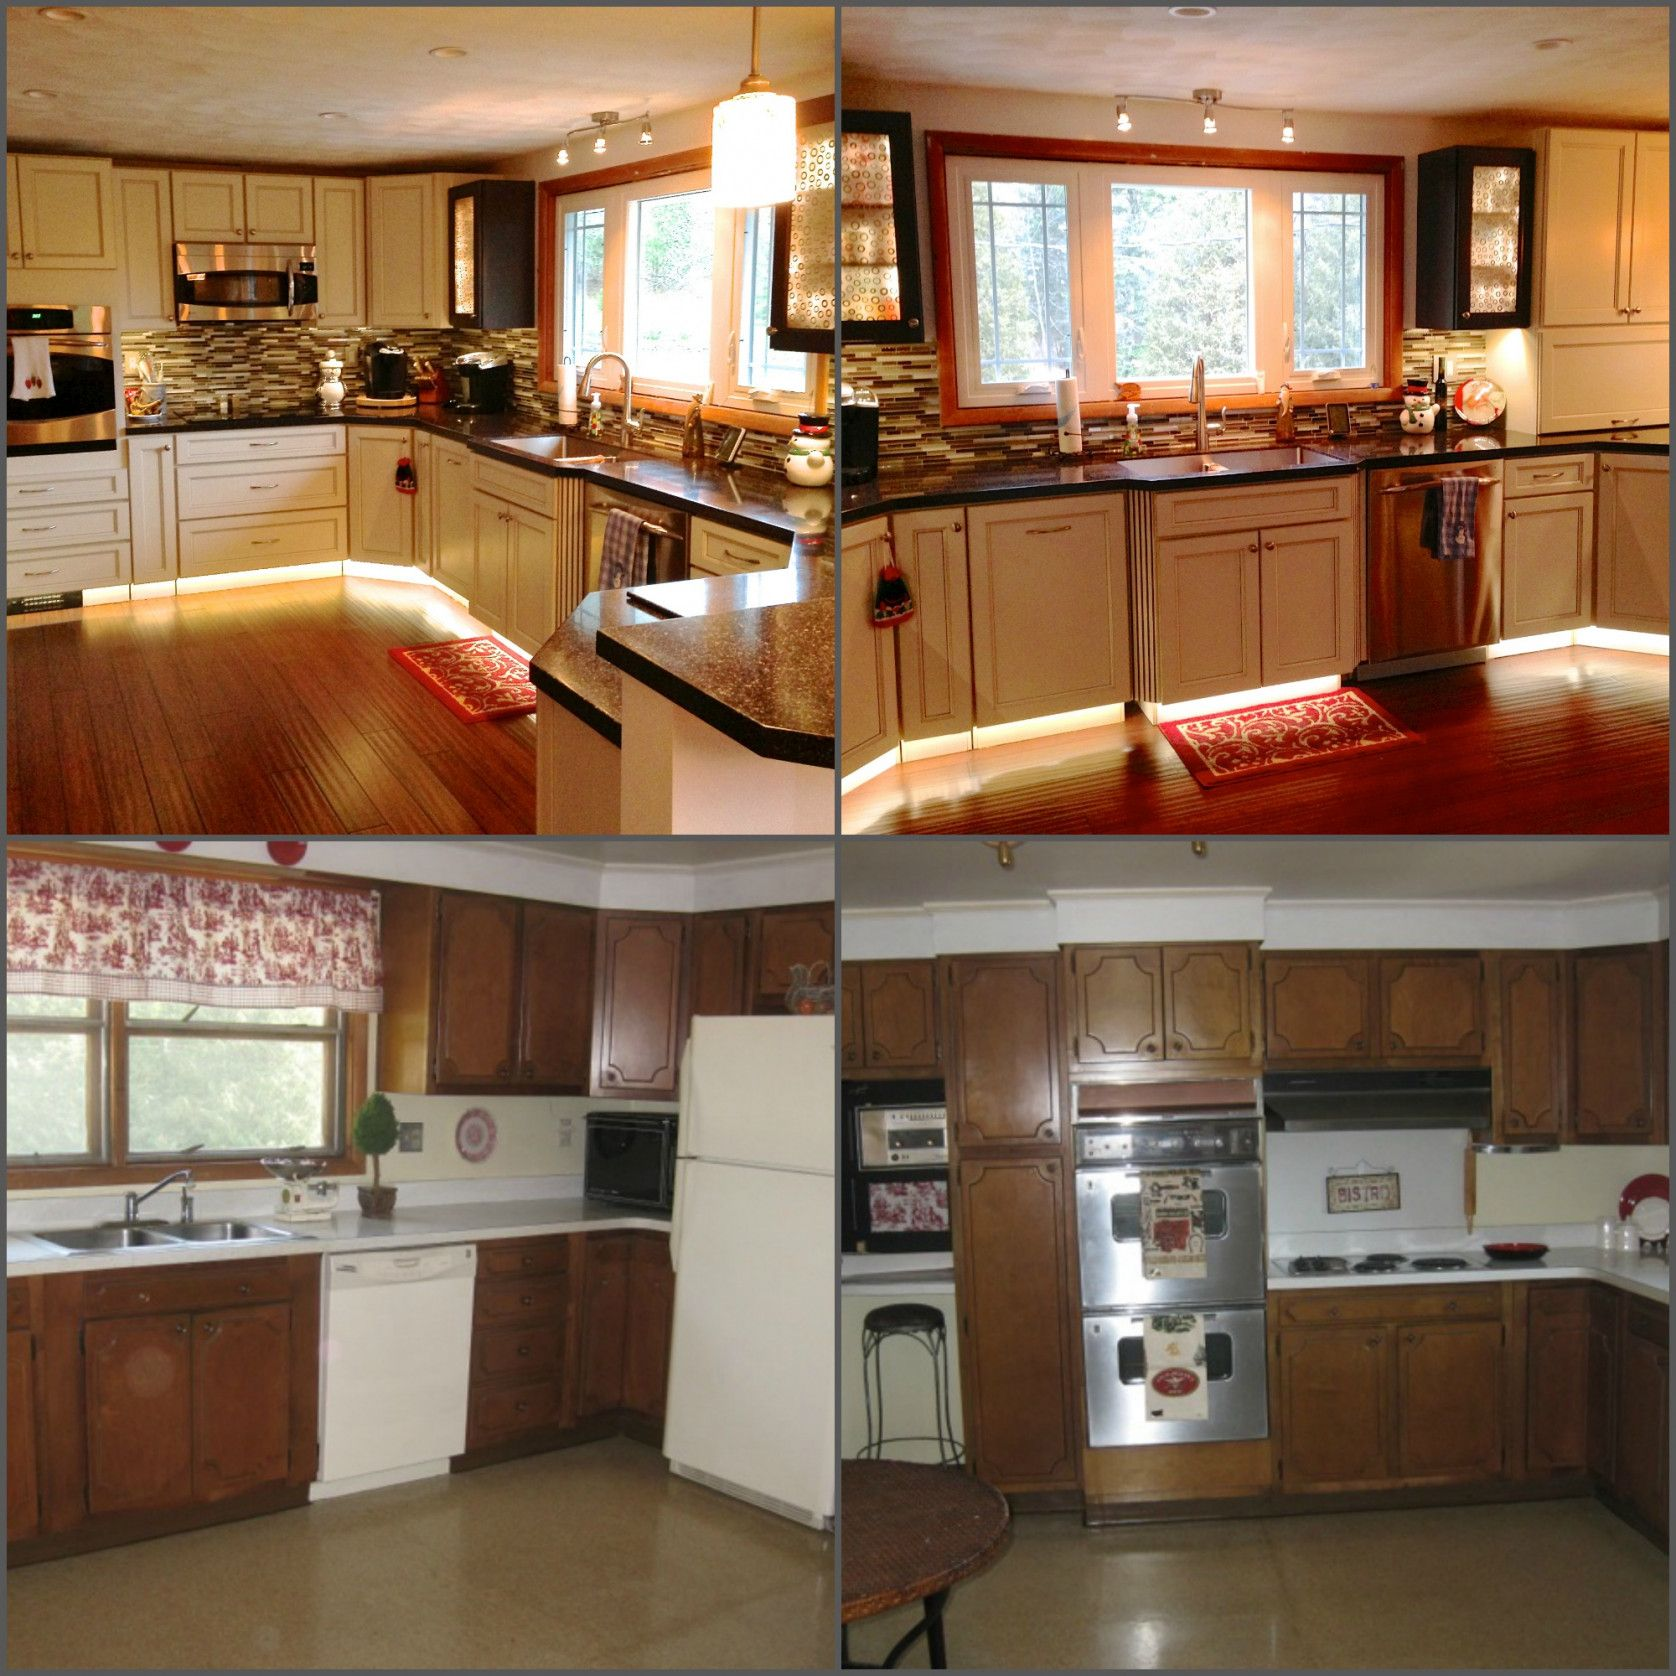 Manufactured home kitchen renovation: carpet replaced with plywood ...